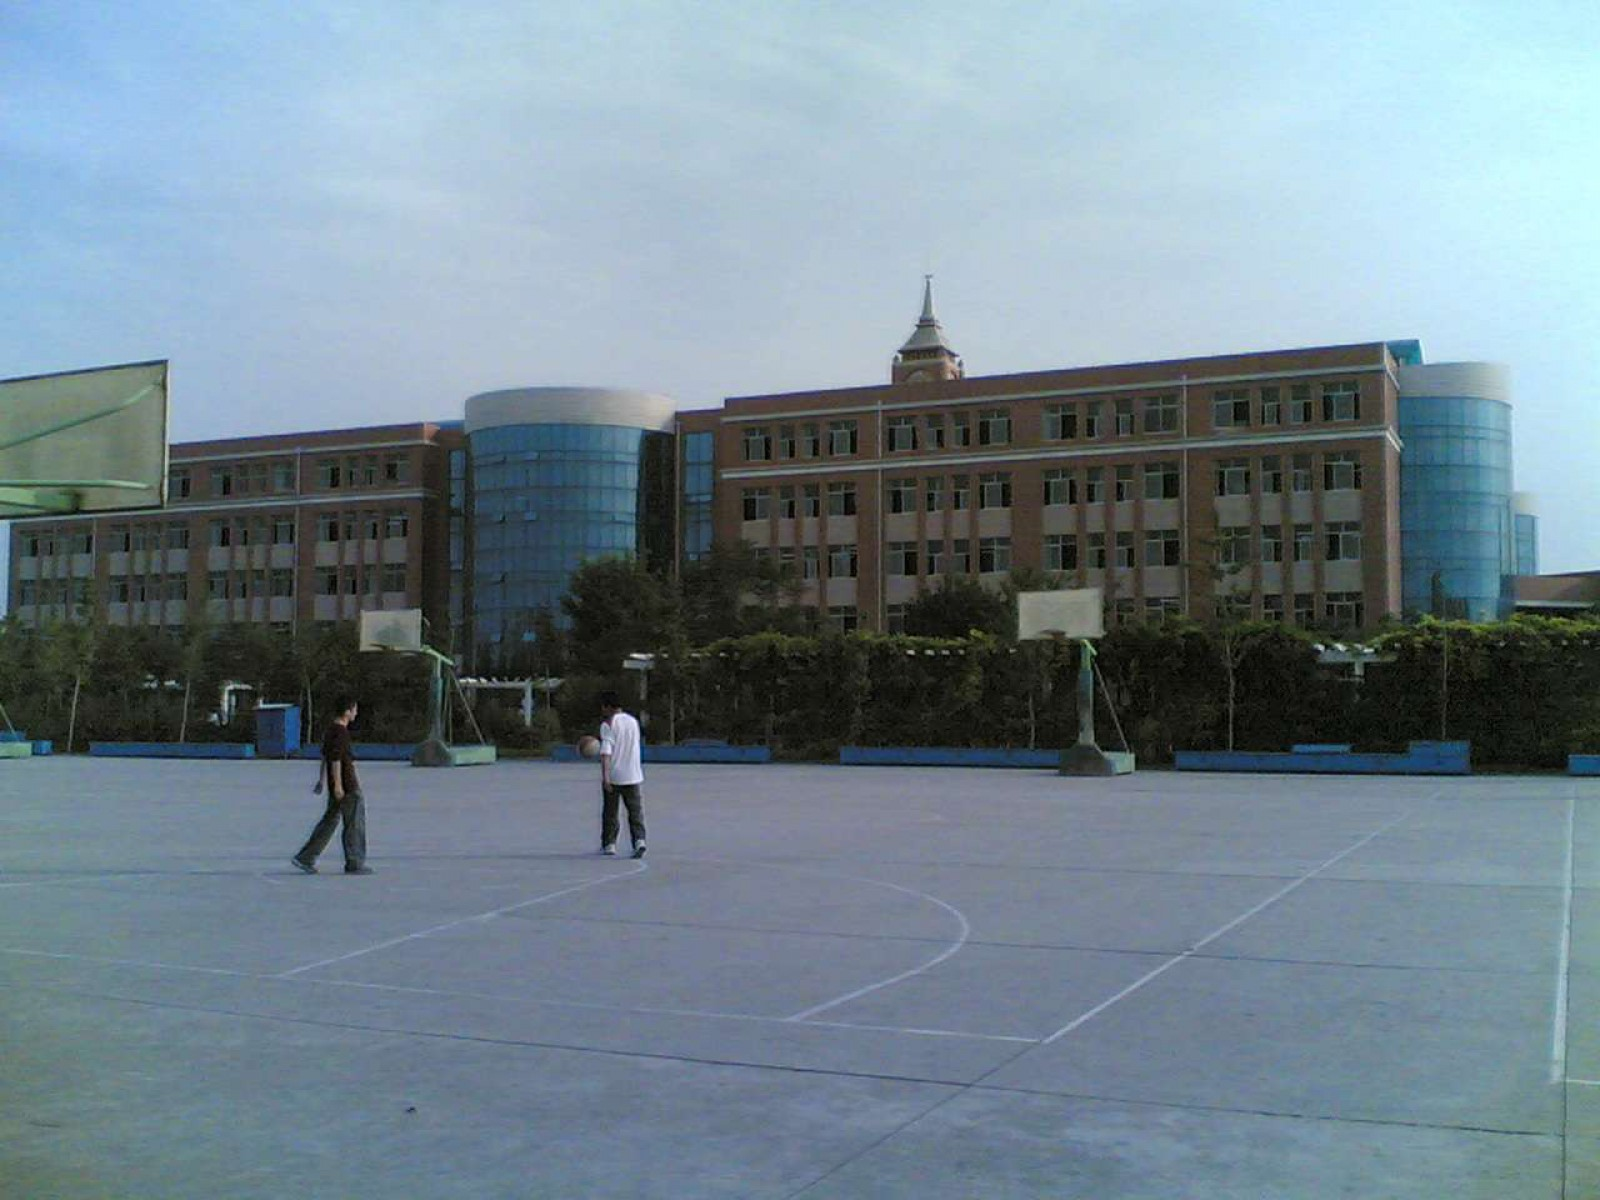 Foreign Language School, Baoding, China